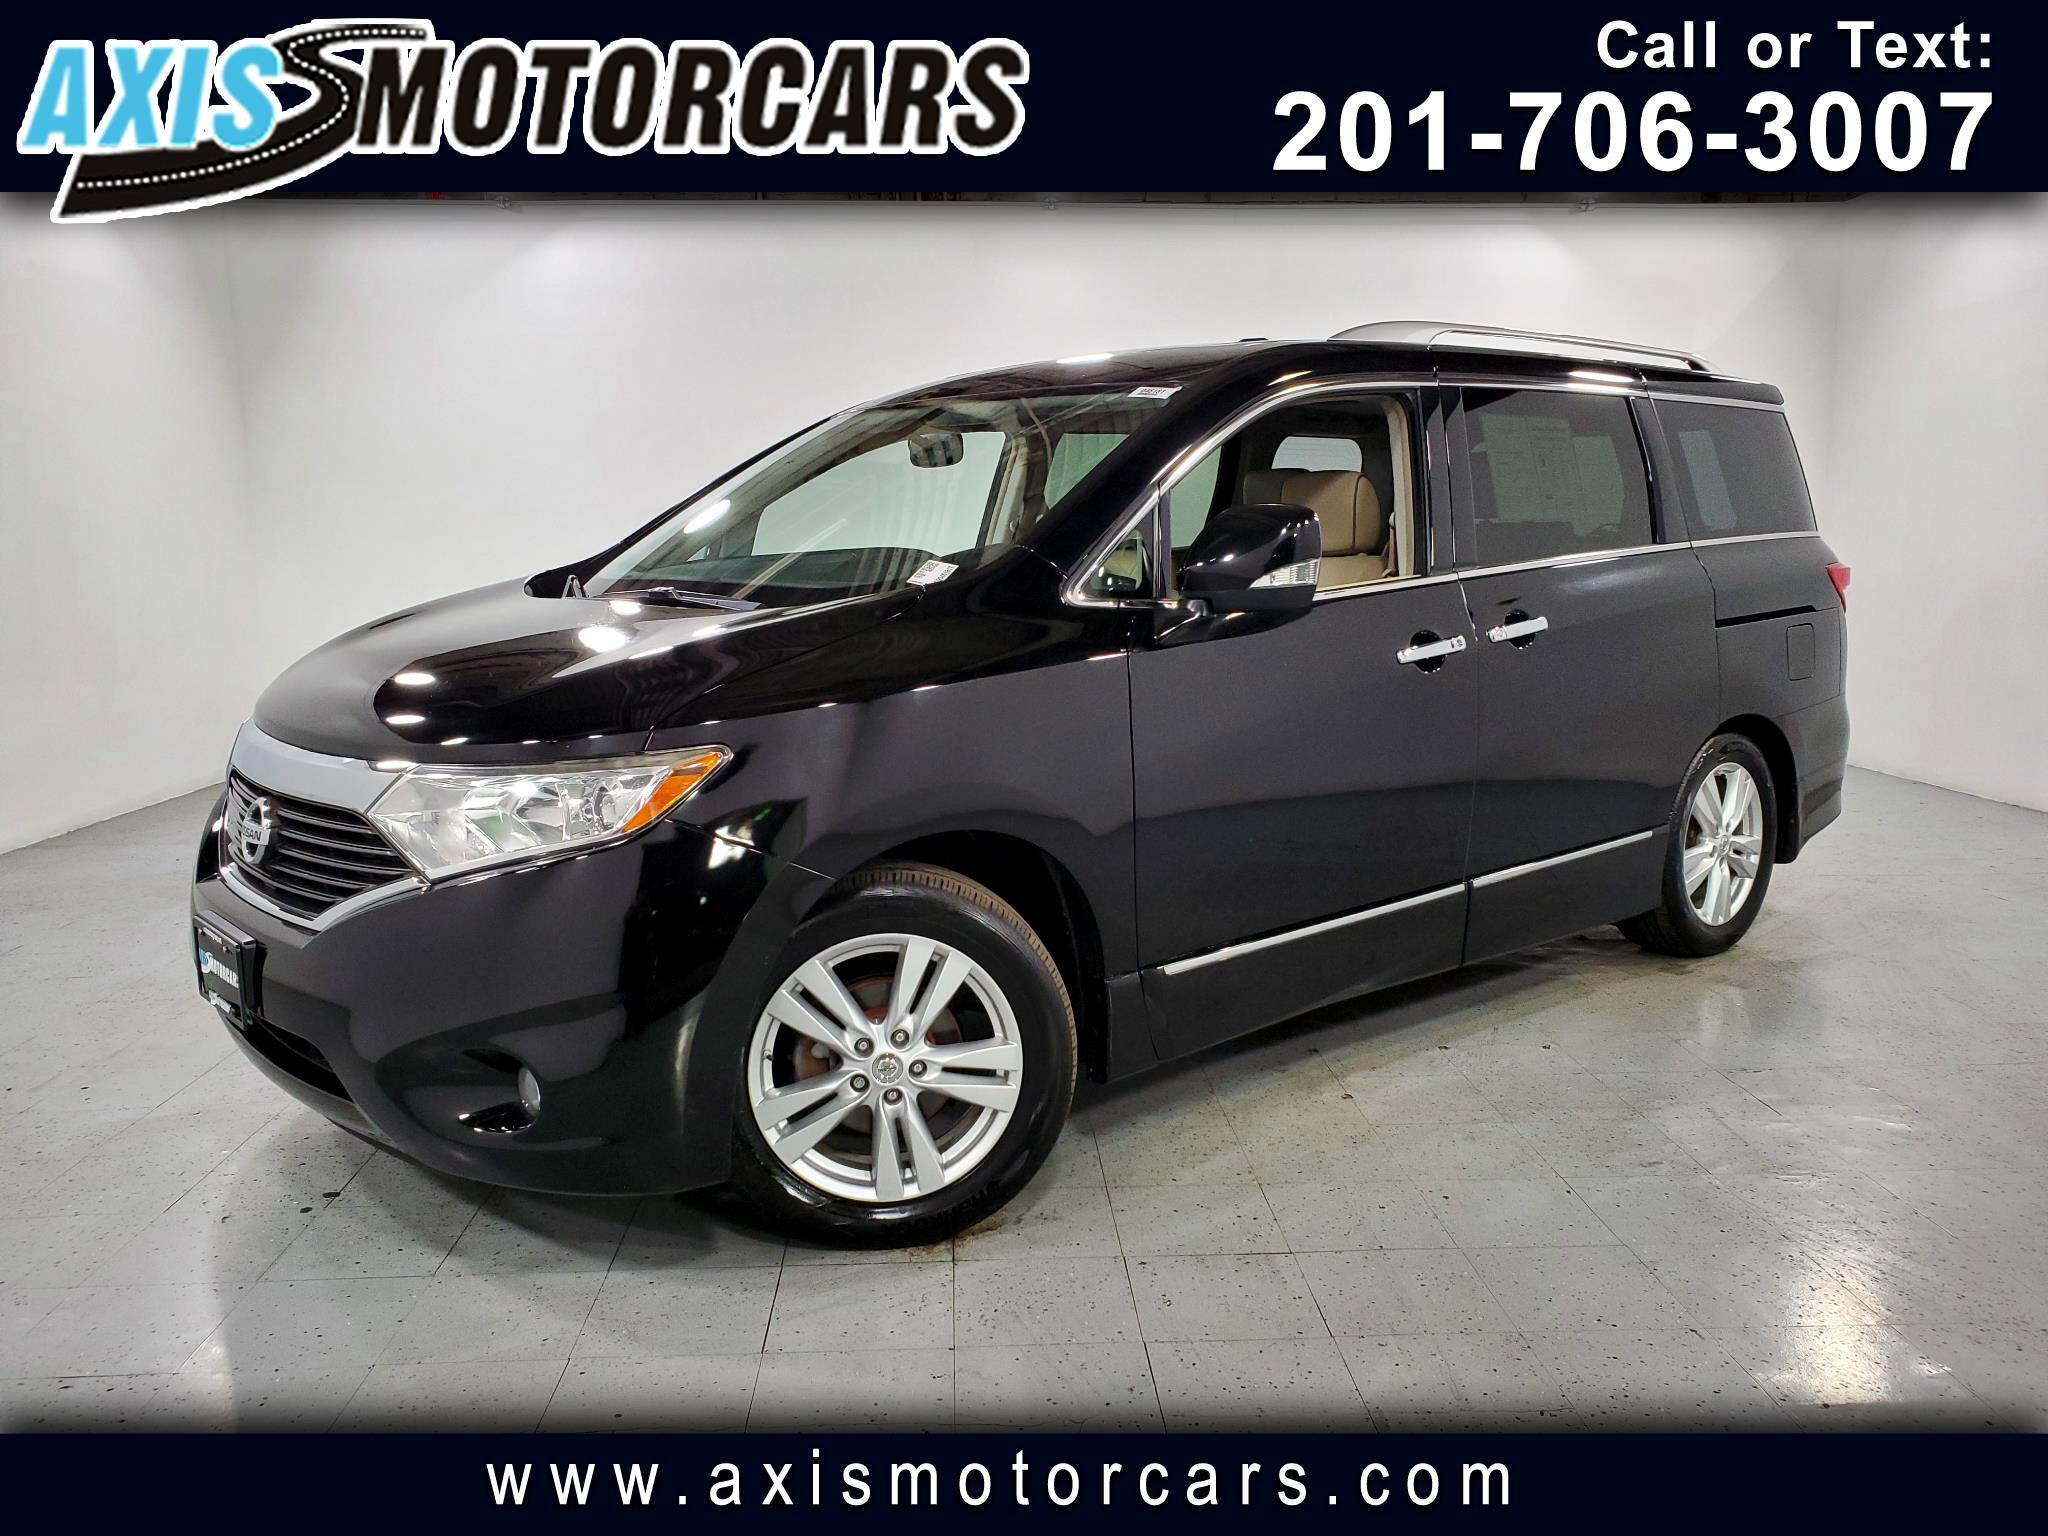 2012 Nissan Quest SL w/Bakup Camera Sunroof Leather